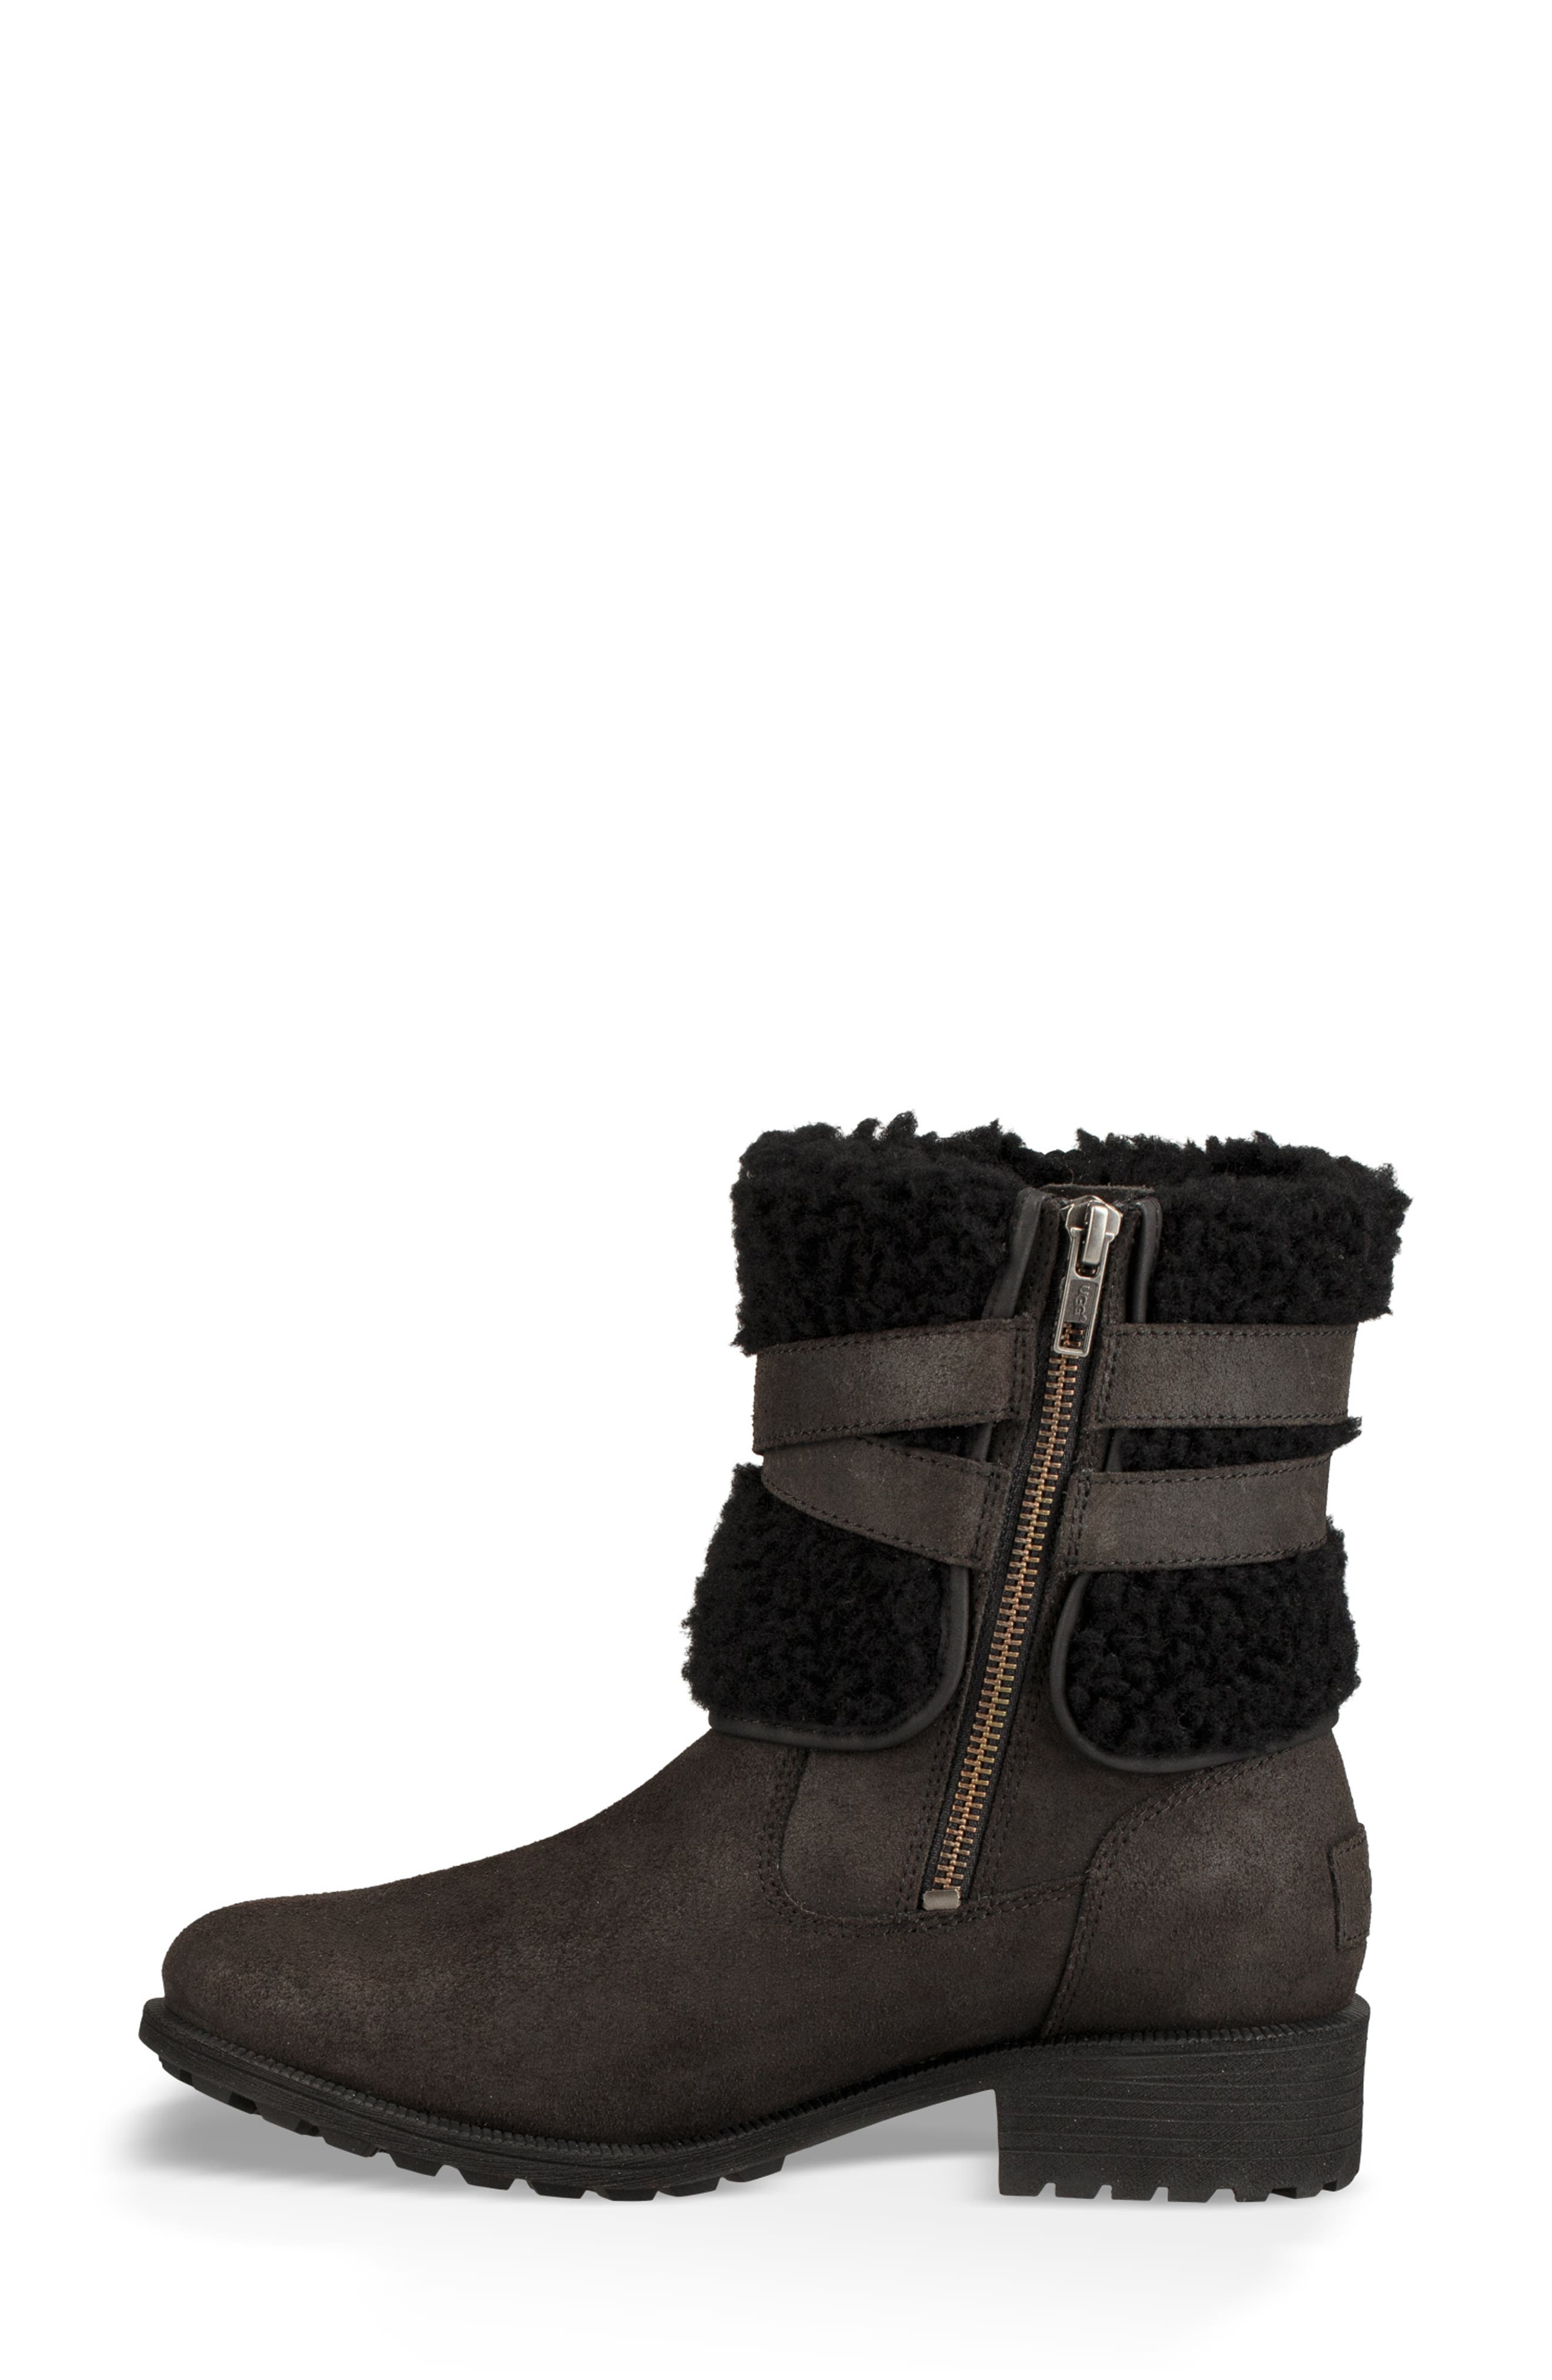 Blayre III Faux Shearling Cuff Bootie,                             Alternate thumbnail 6, color,                             BLACK